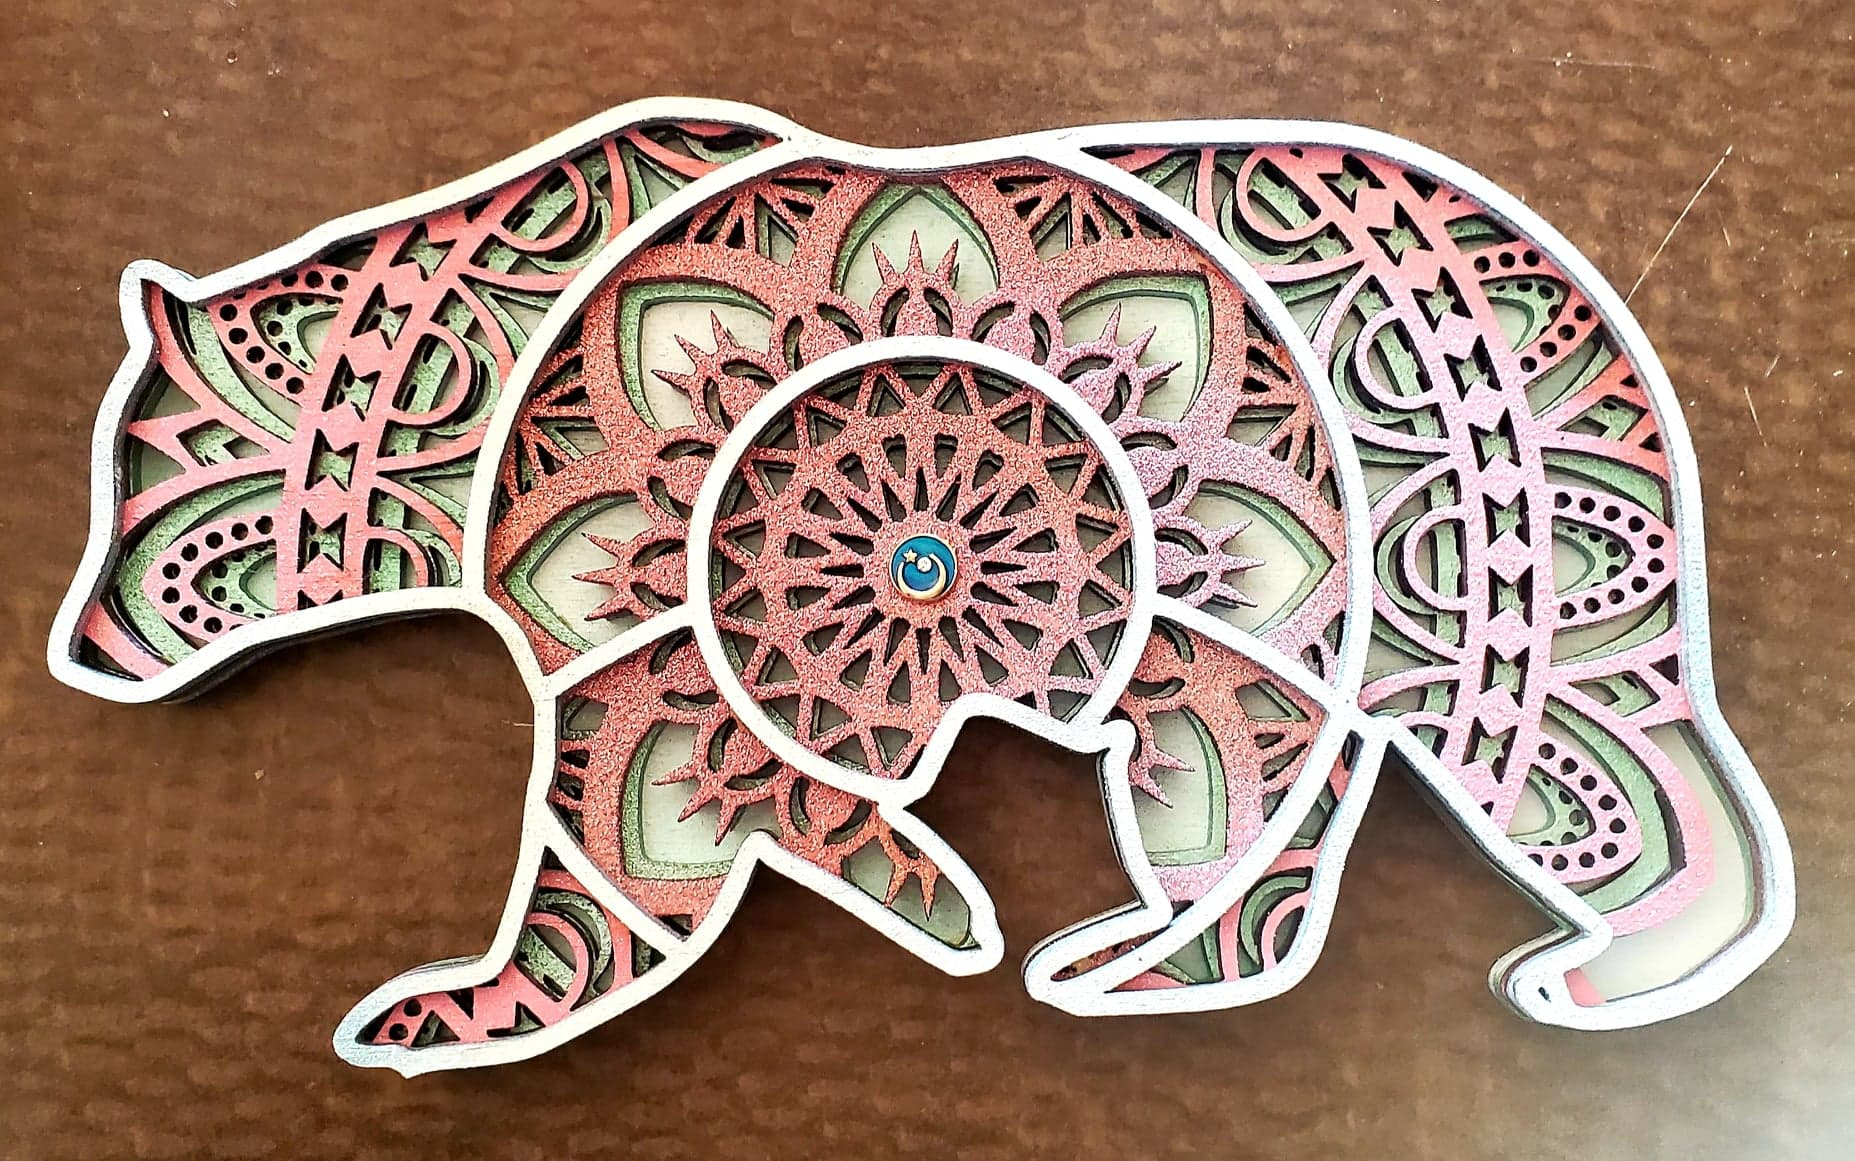 How to make a bear mandala with a laser cutter